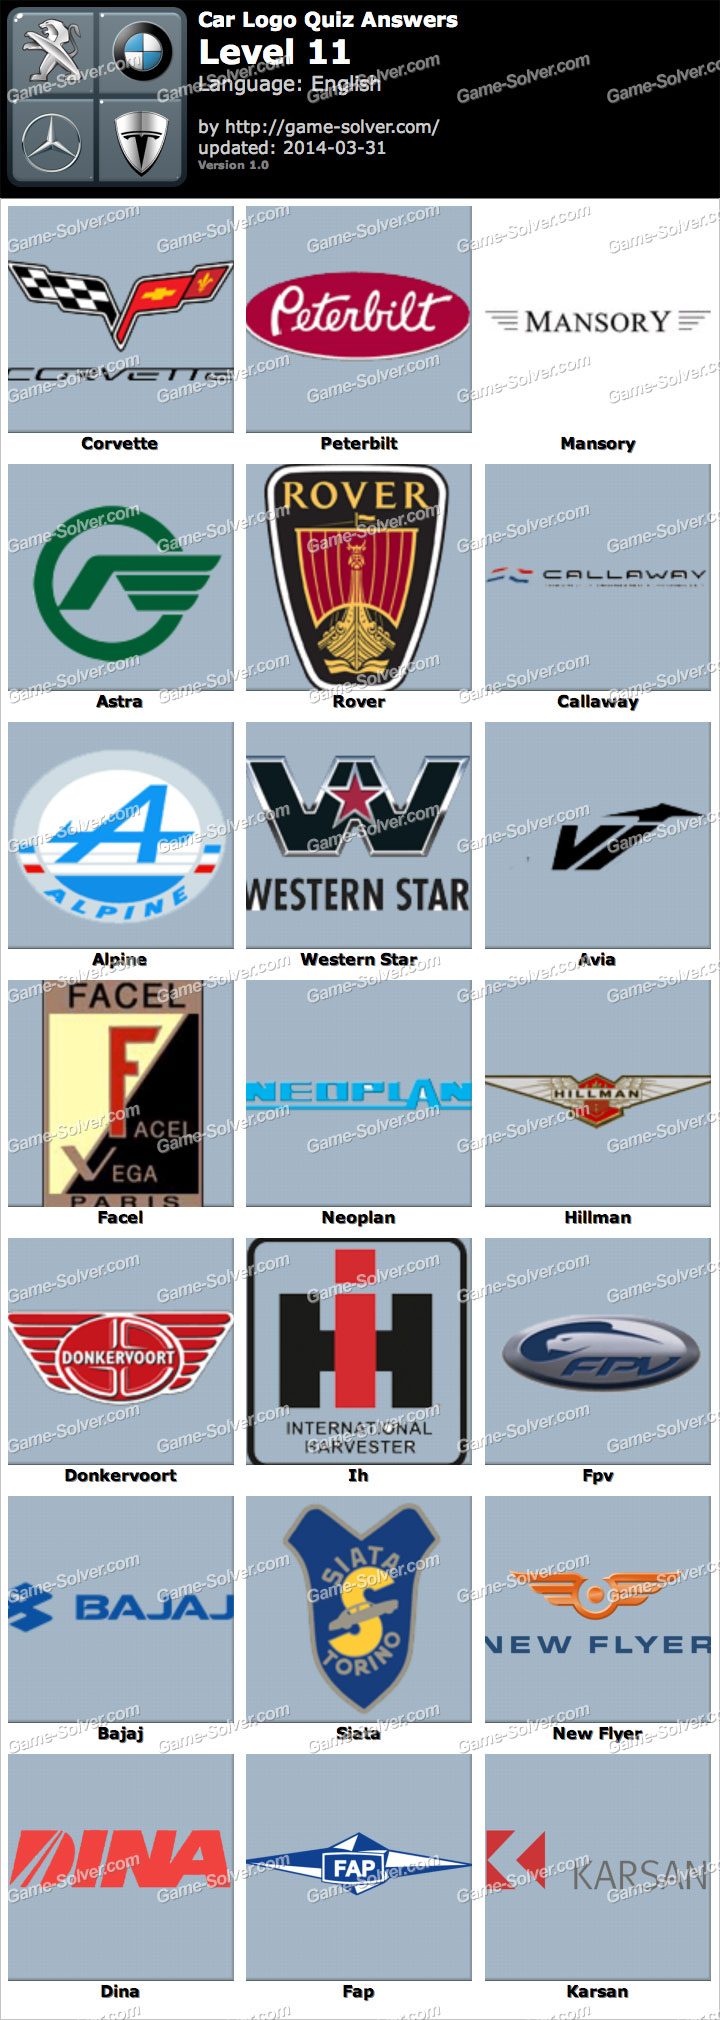 Car Logo Quiz Level 11 - Game Solver